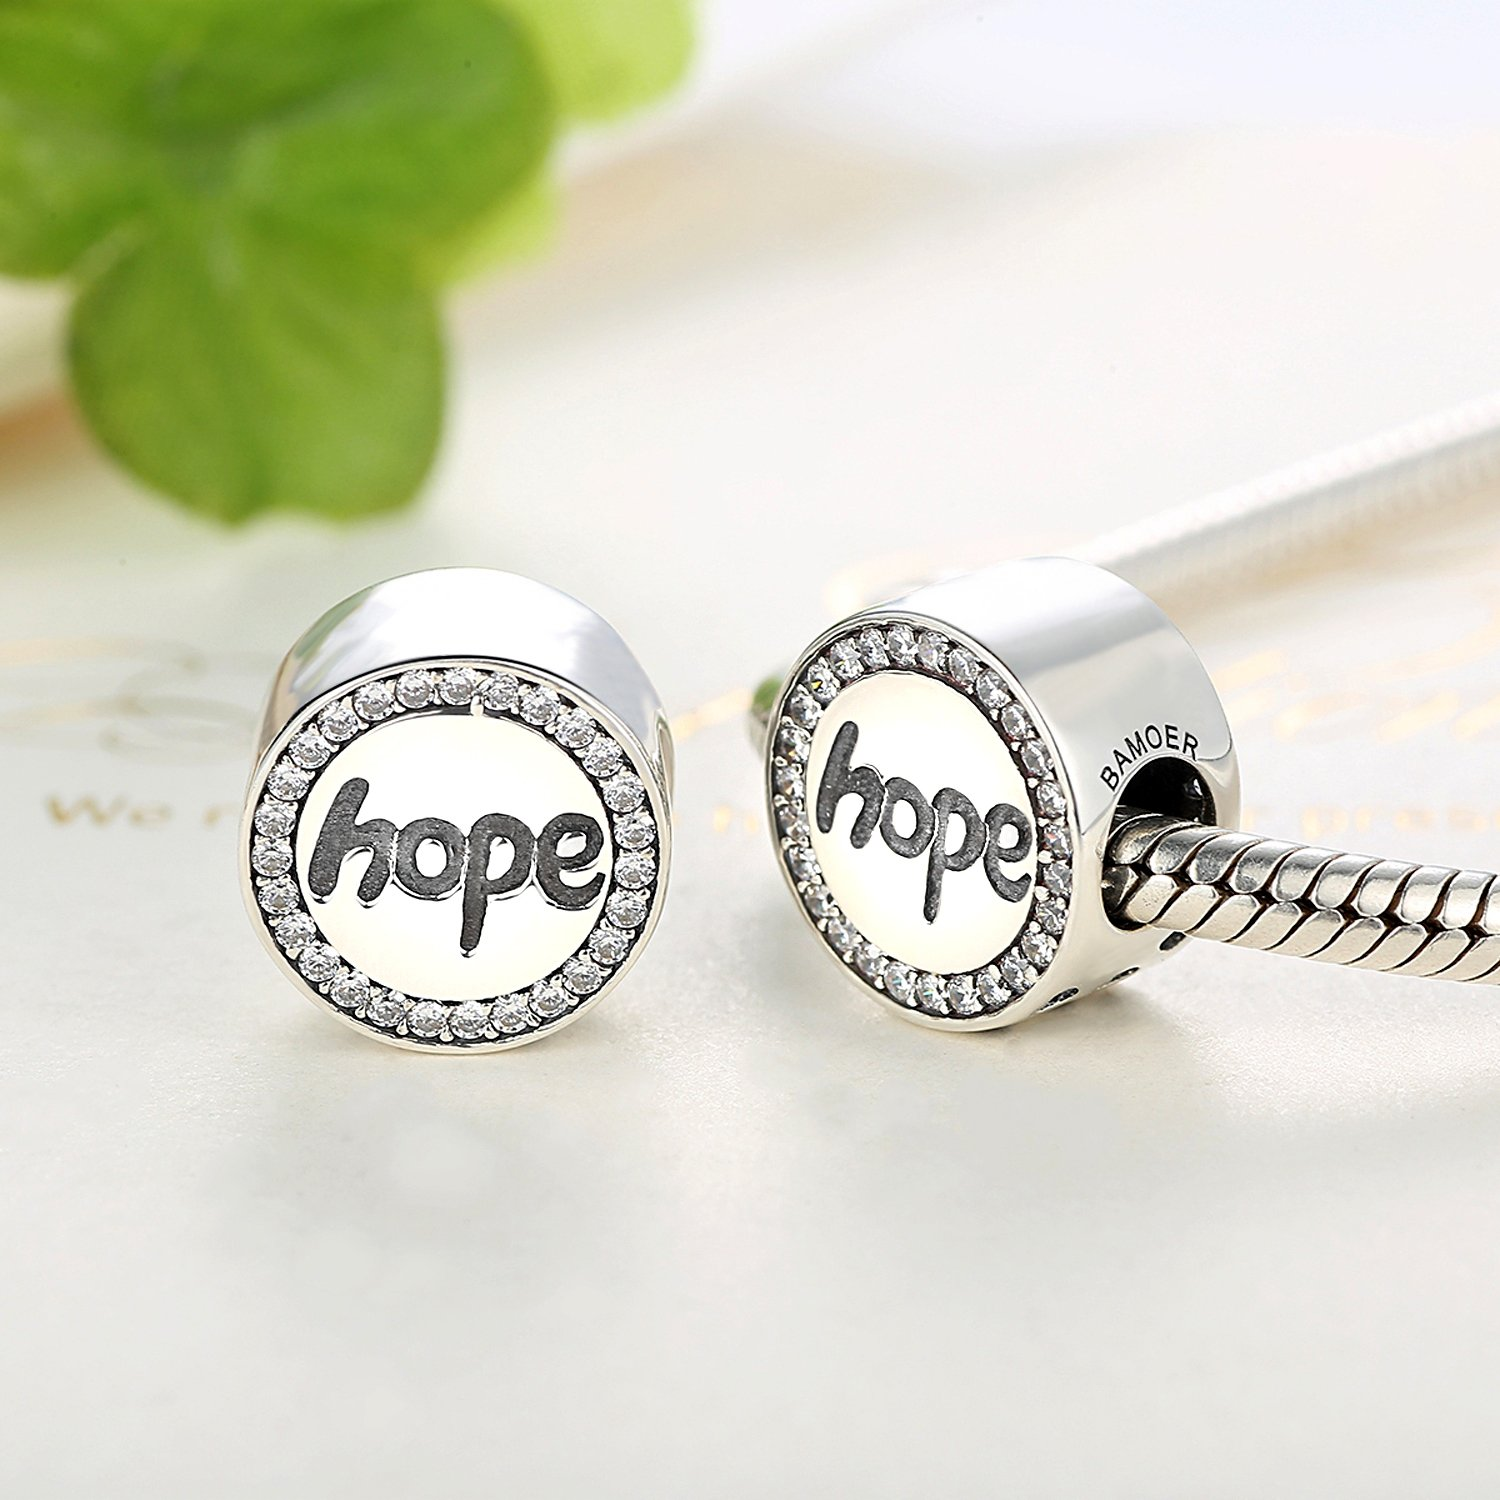 Faith-Hope-Charm-Best-Wish-Clear-CZ-Bead-Charms-fit-Pandora-Bracelet-Necklaces-Jewelry-Birthday-Gifts